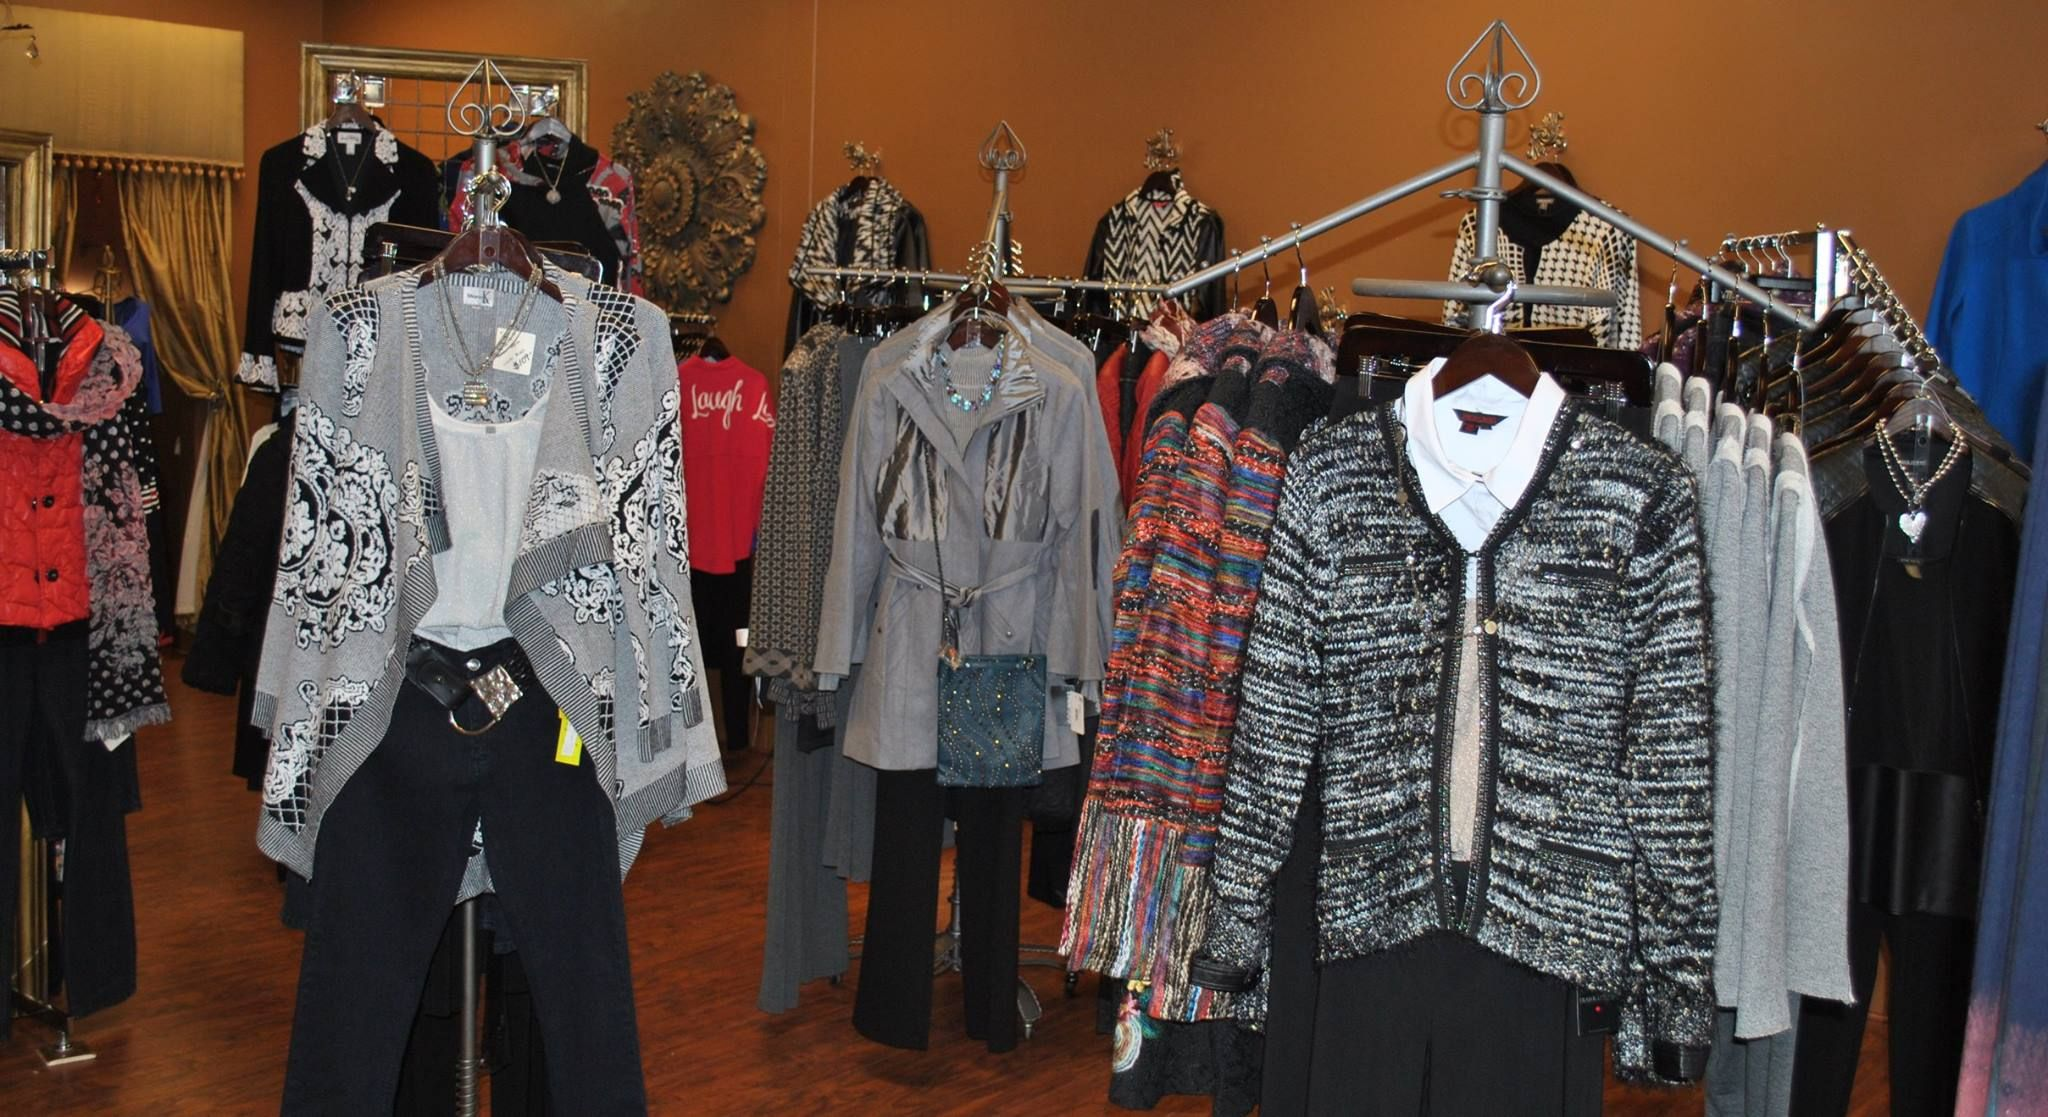 Looking good at Indulge Boutique Eagan, MN